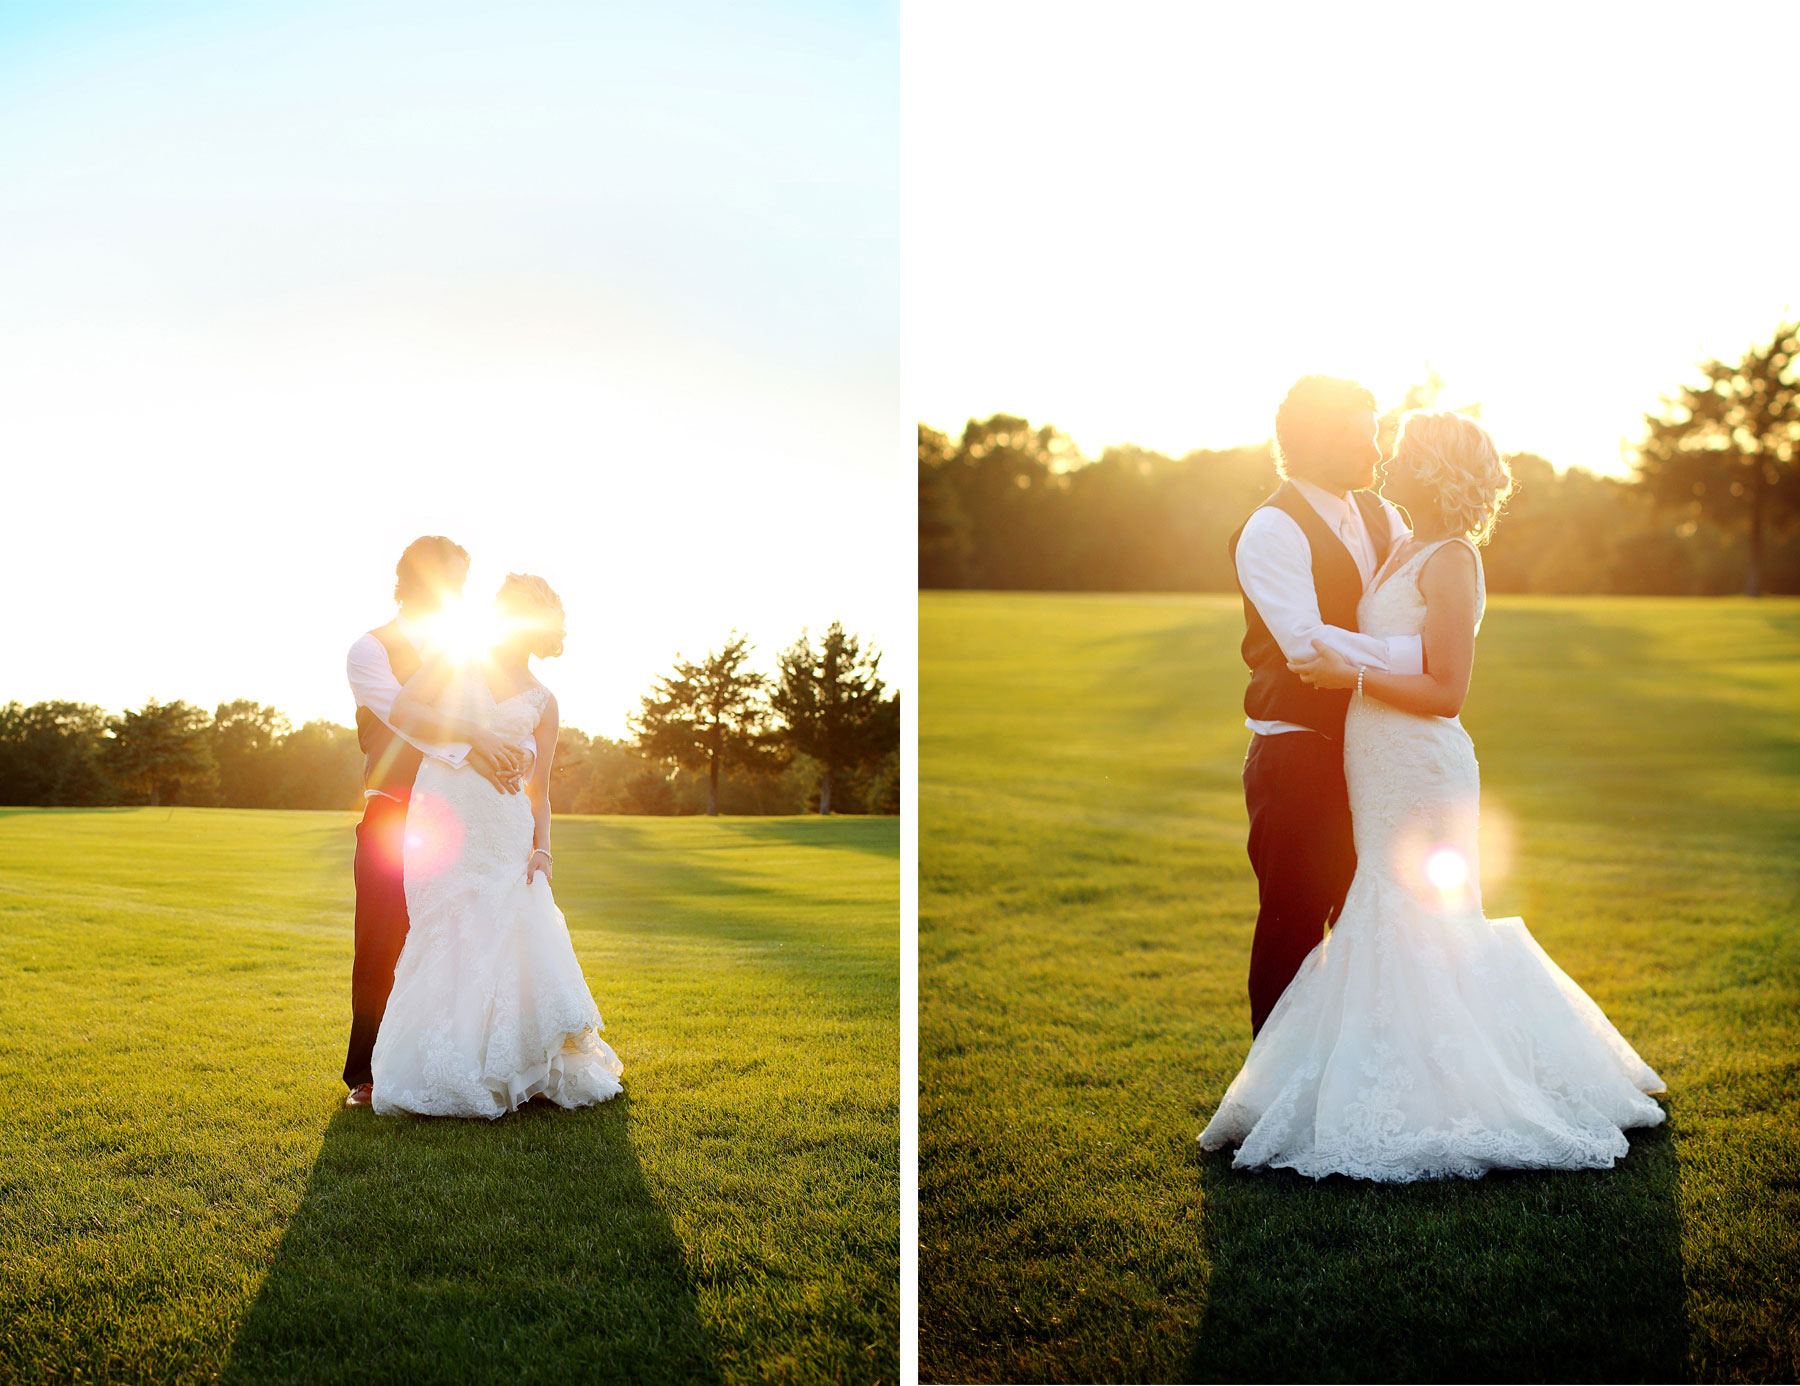 18-Minneapols-Minnesota-Wedding-Photography-by-Vick-Photography--Bluff-Creek-Golf-Club-Reception-Sunset-Gretchen-&-Peter.jpg